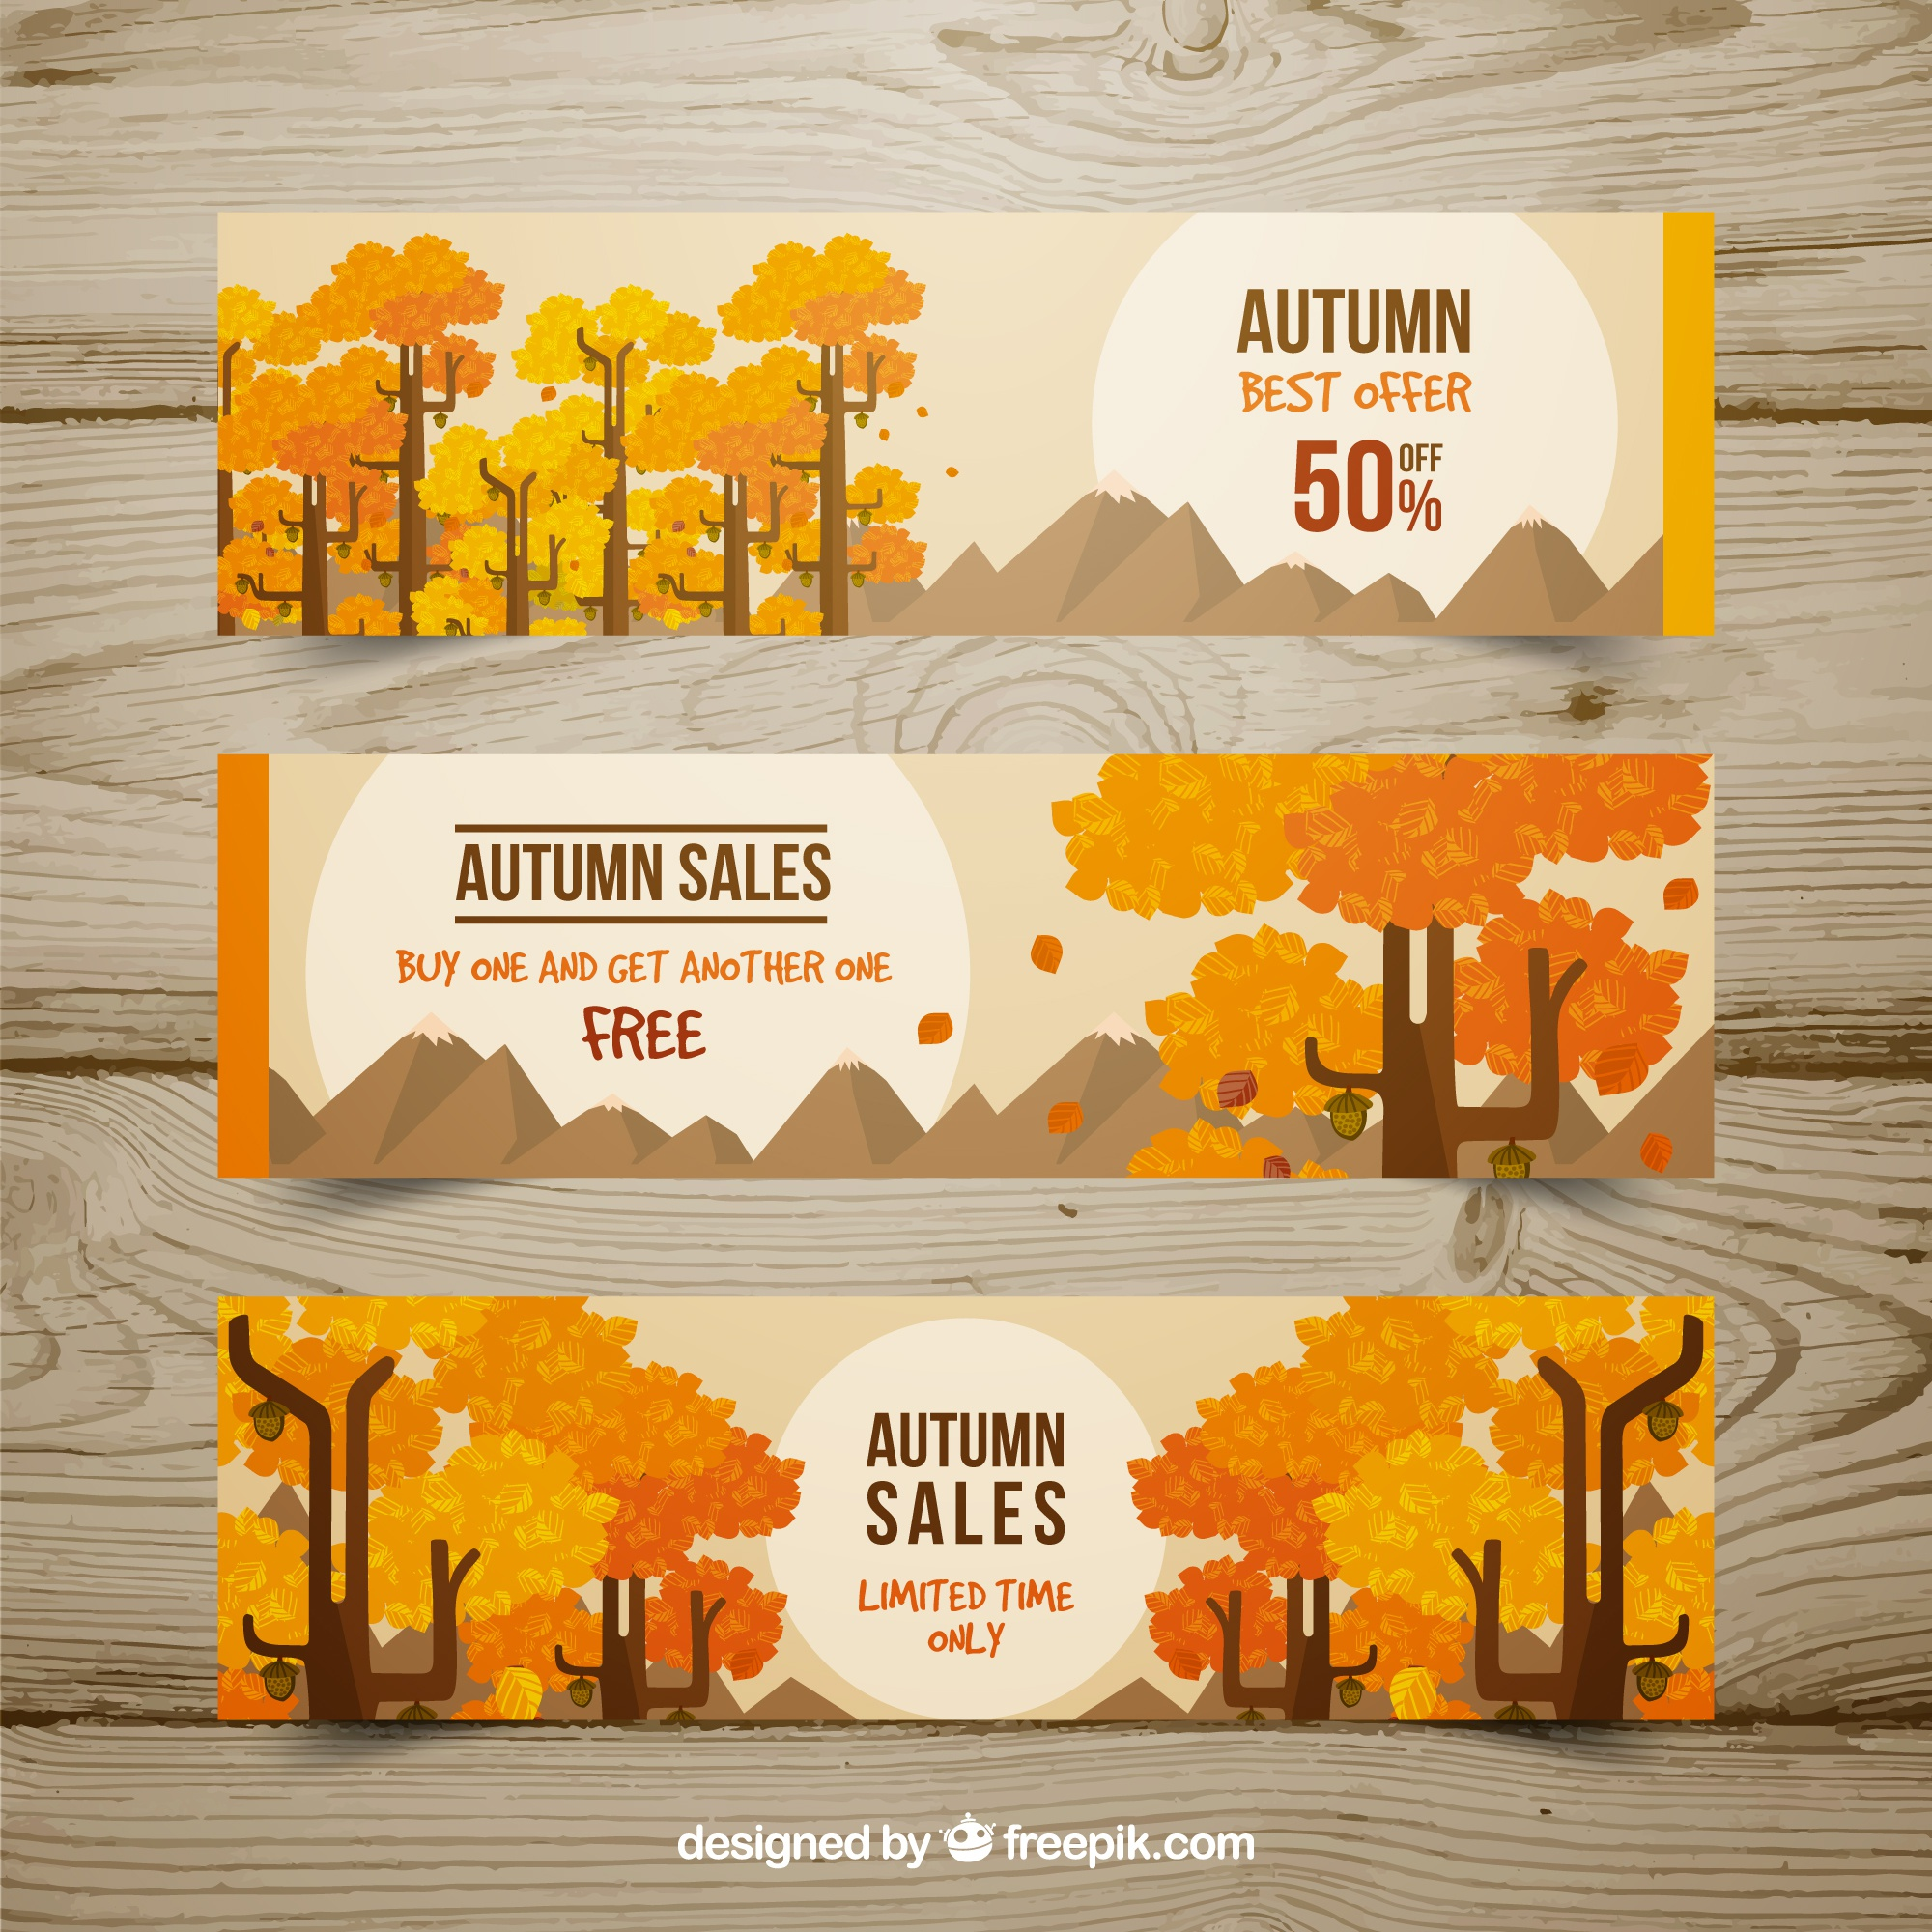 Offers banners, autumn